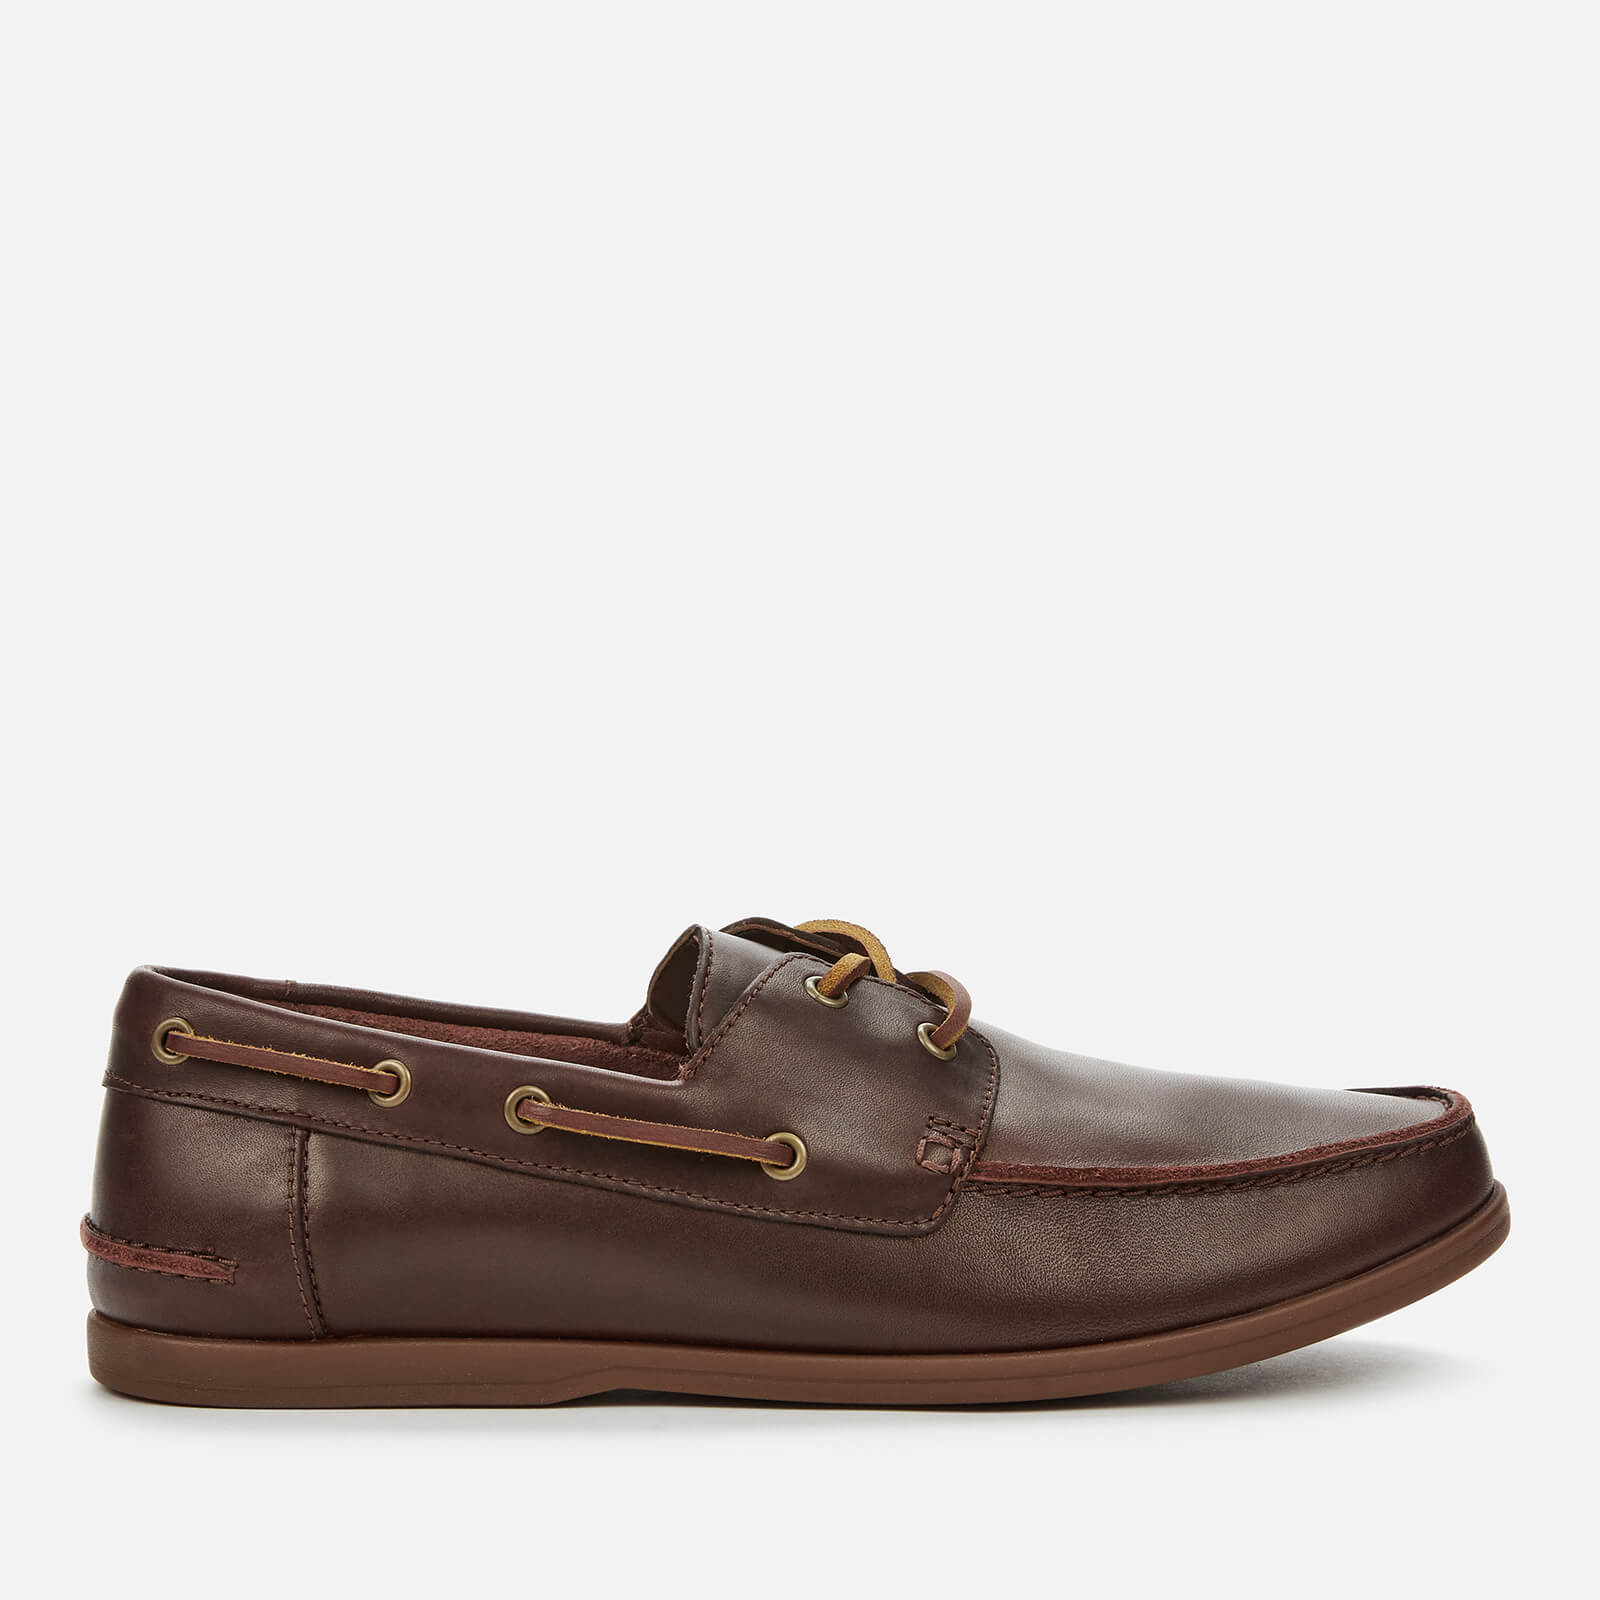 Clarks Men's Pickwell Sail Leather Boat Shoes British Tan